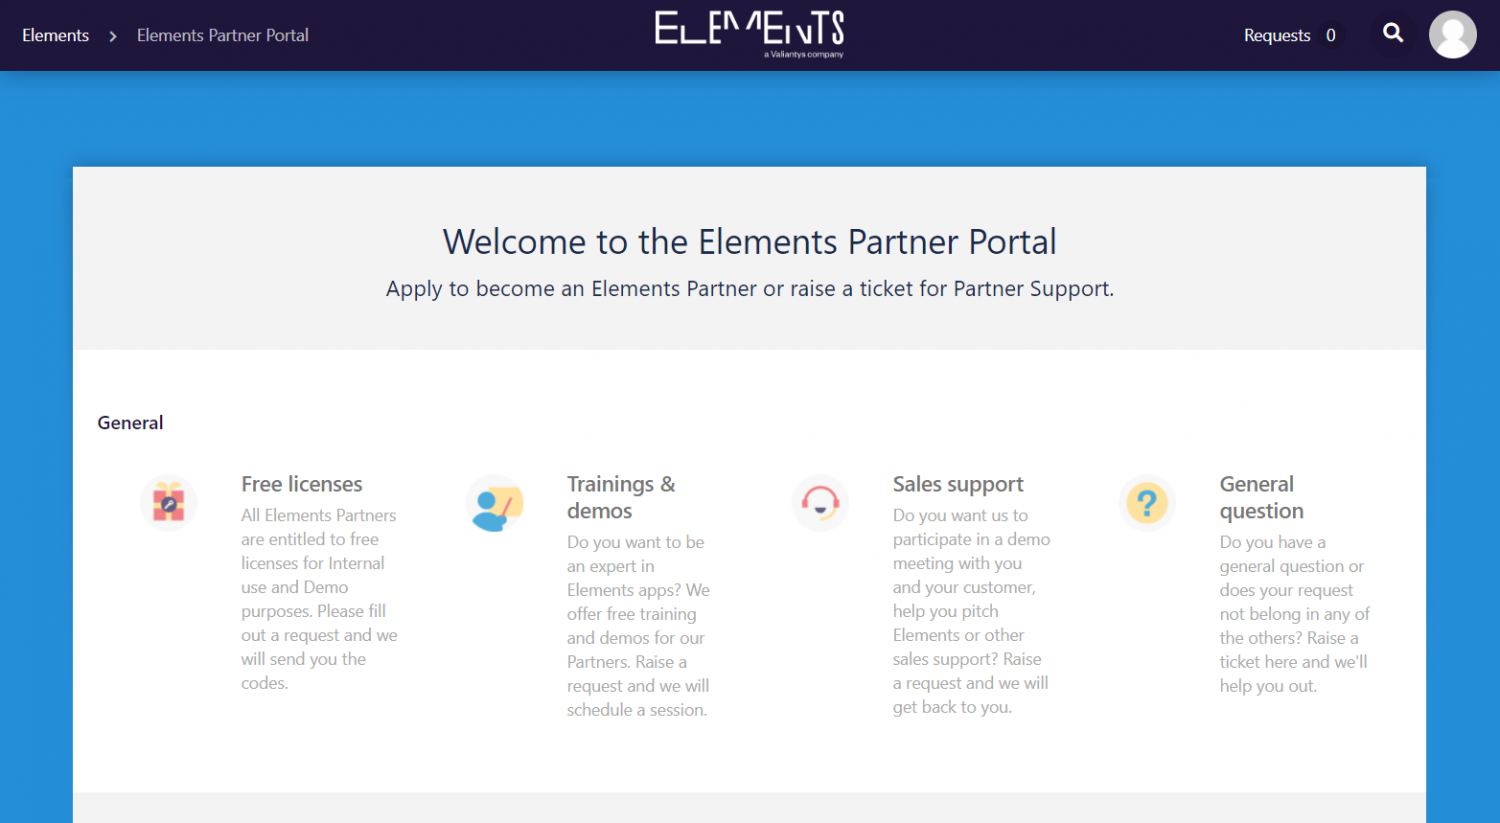 Elements apps partner portal for Atlassian Solution Partners